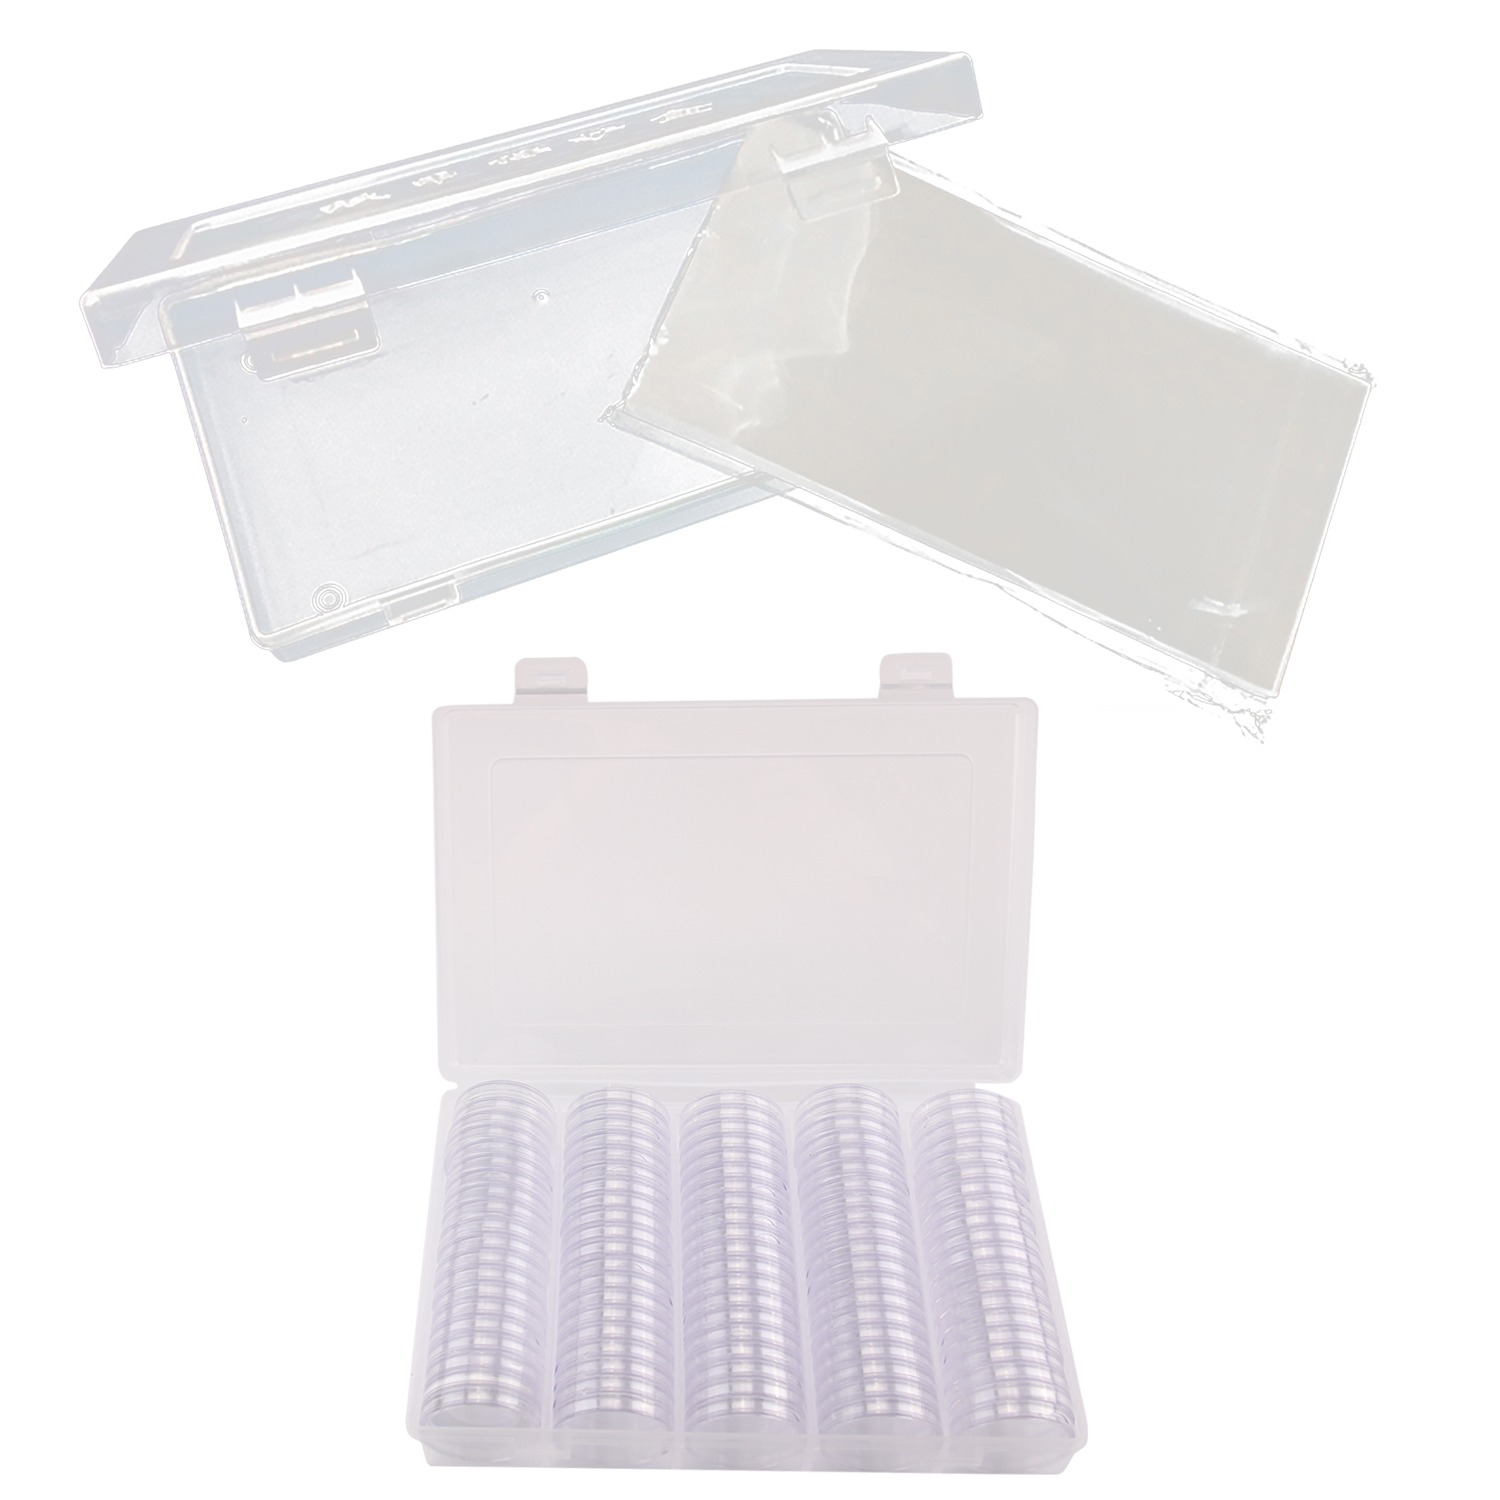 100PCS Banknote Currency Bags With Box + 100PCS 30mm Coin Holder Cases With Box For Collector Collection Supplies